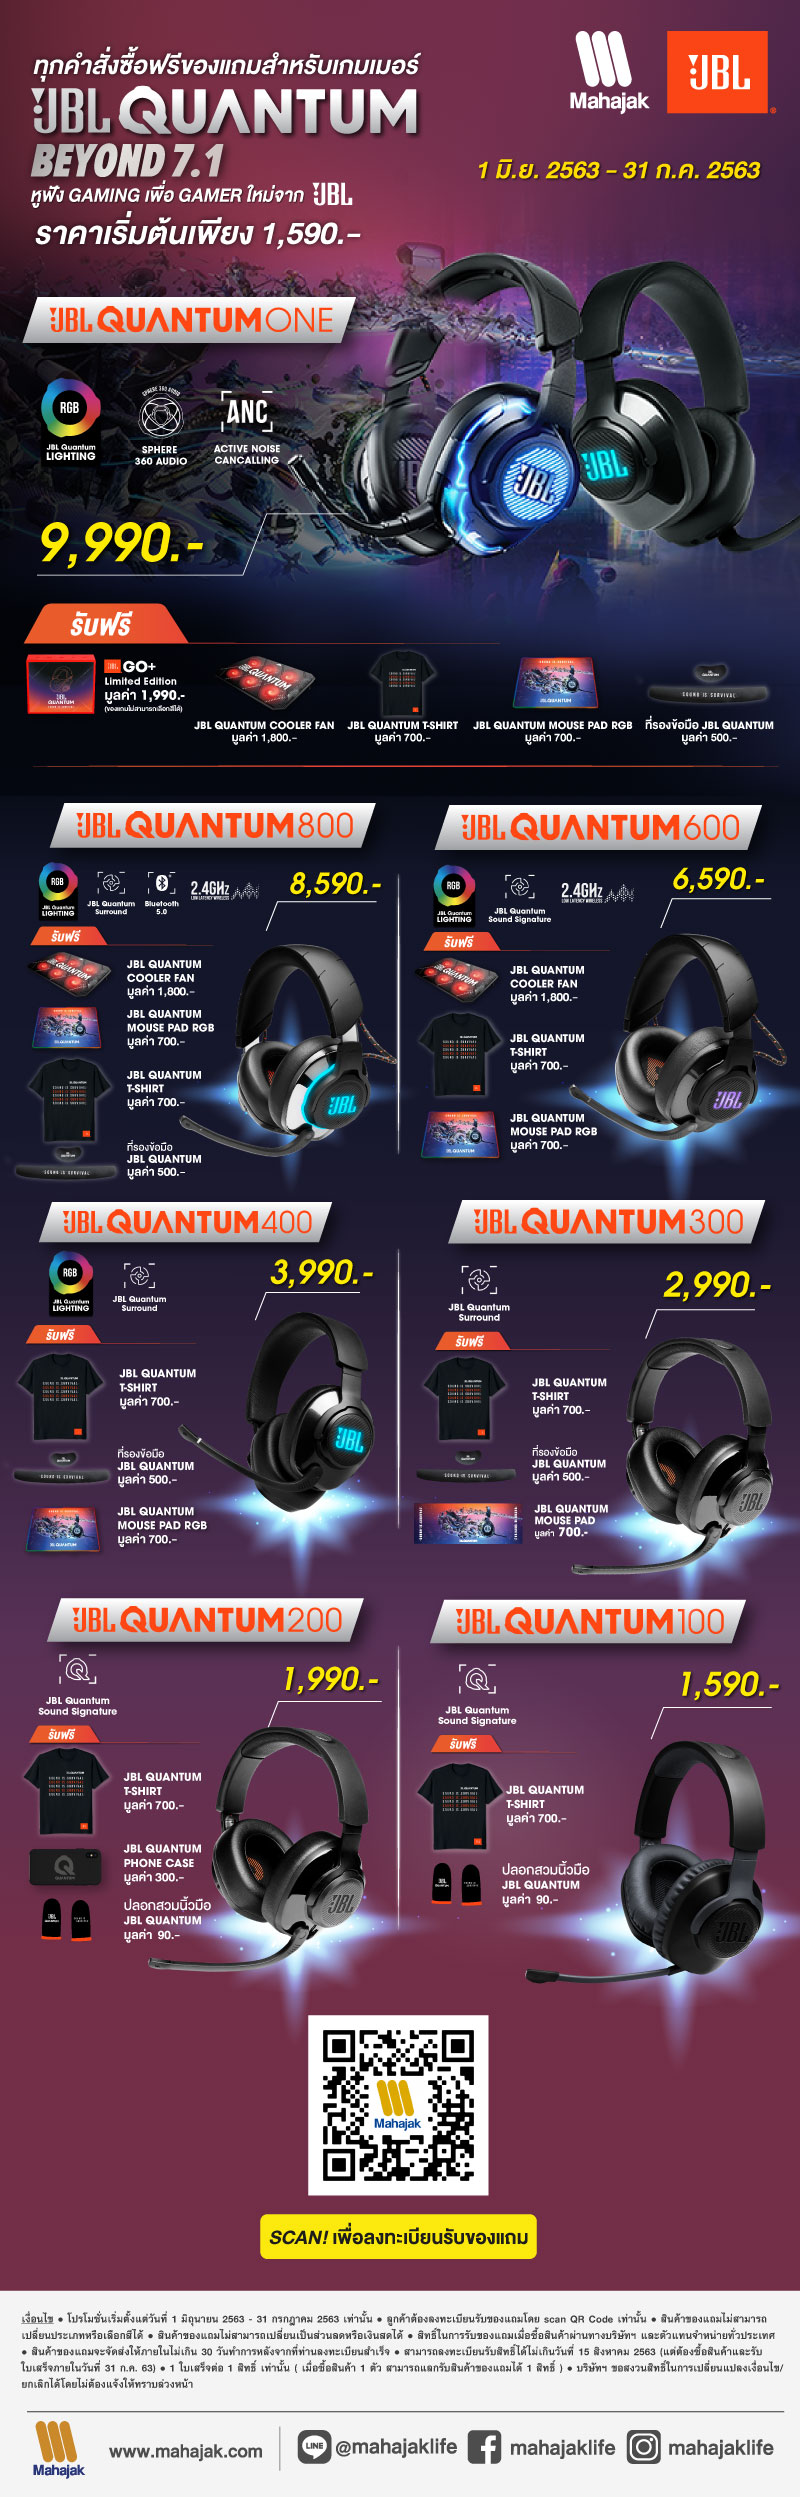 JBL Quantum Series Promotion